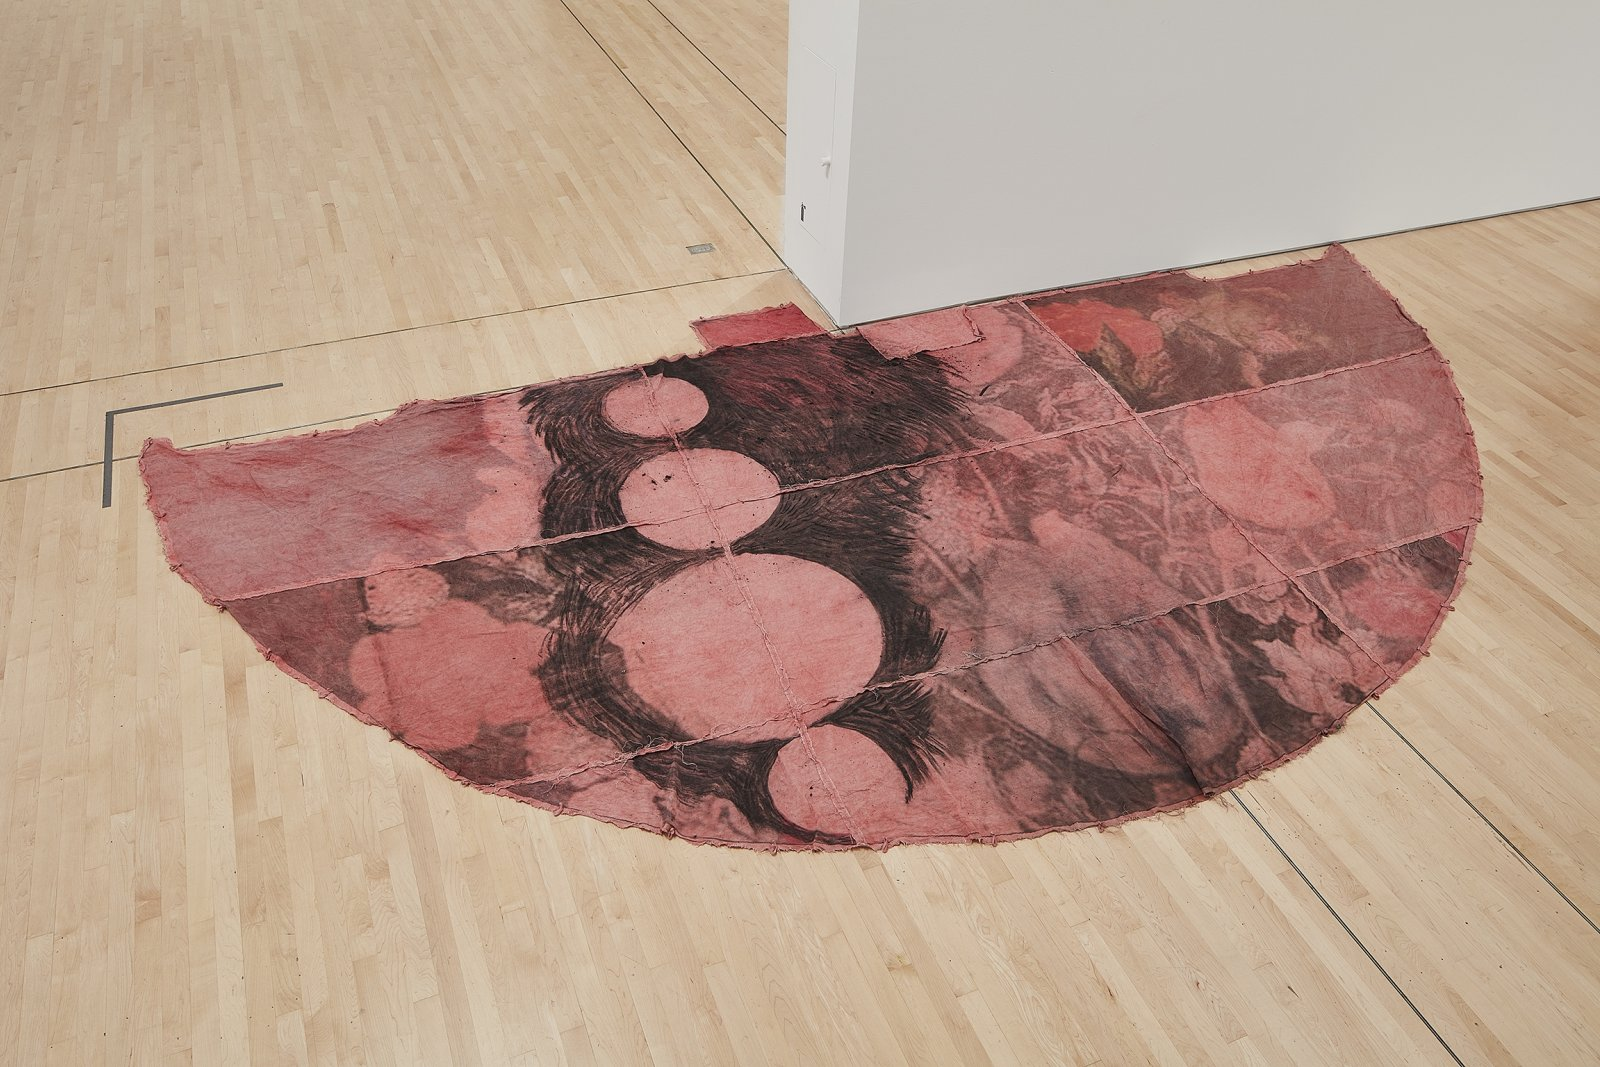 Duane Linklater, can the circle be unbroken 4, 2019, digital print on linen, cup and saucer red dye, indigo dye, charcoal, 120 x 240 in. (305 x 610 cm). Installation view, SOFT POWER, SF MOMA, San Francisco, USA, 2019 by Duane Linklater